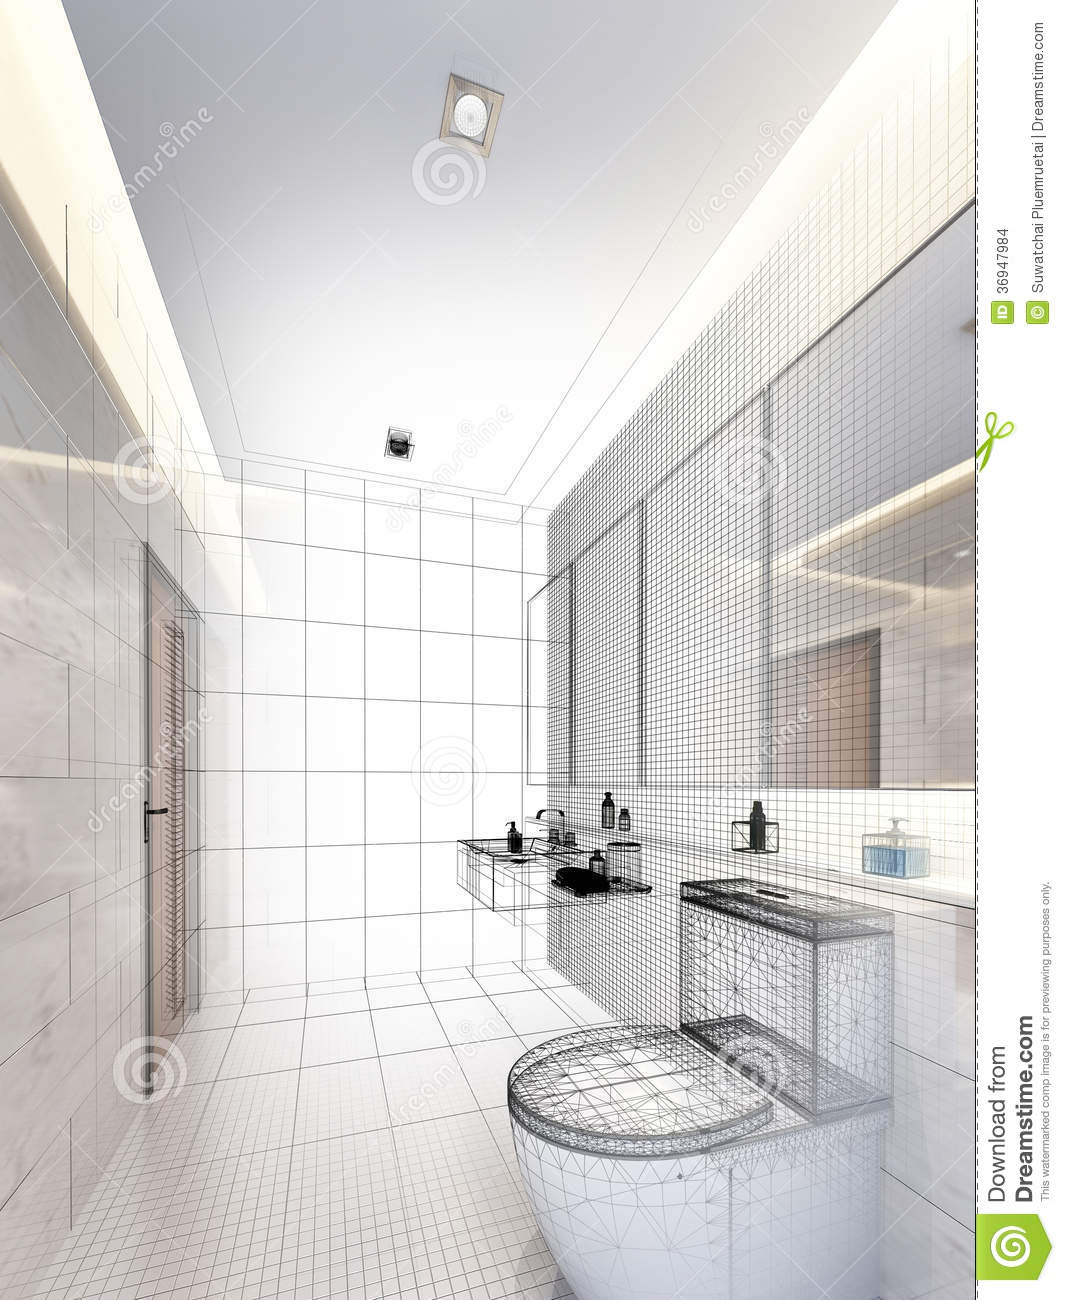 Sketch Design Of Interior Bathroom Stock Illustration Illustration Of Illustration Design